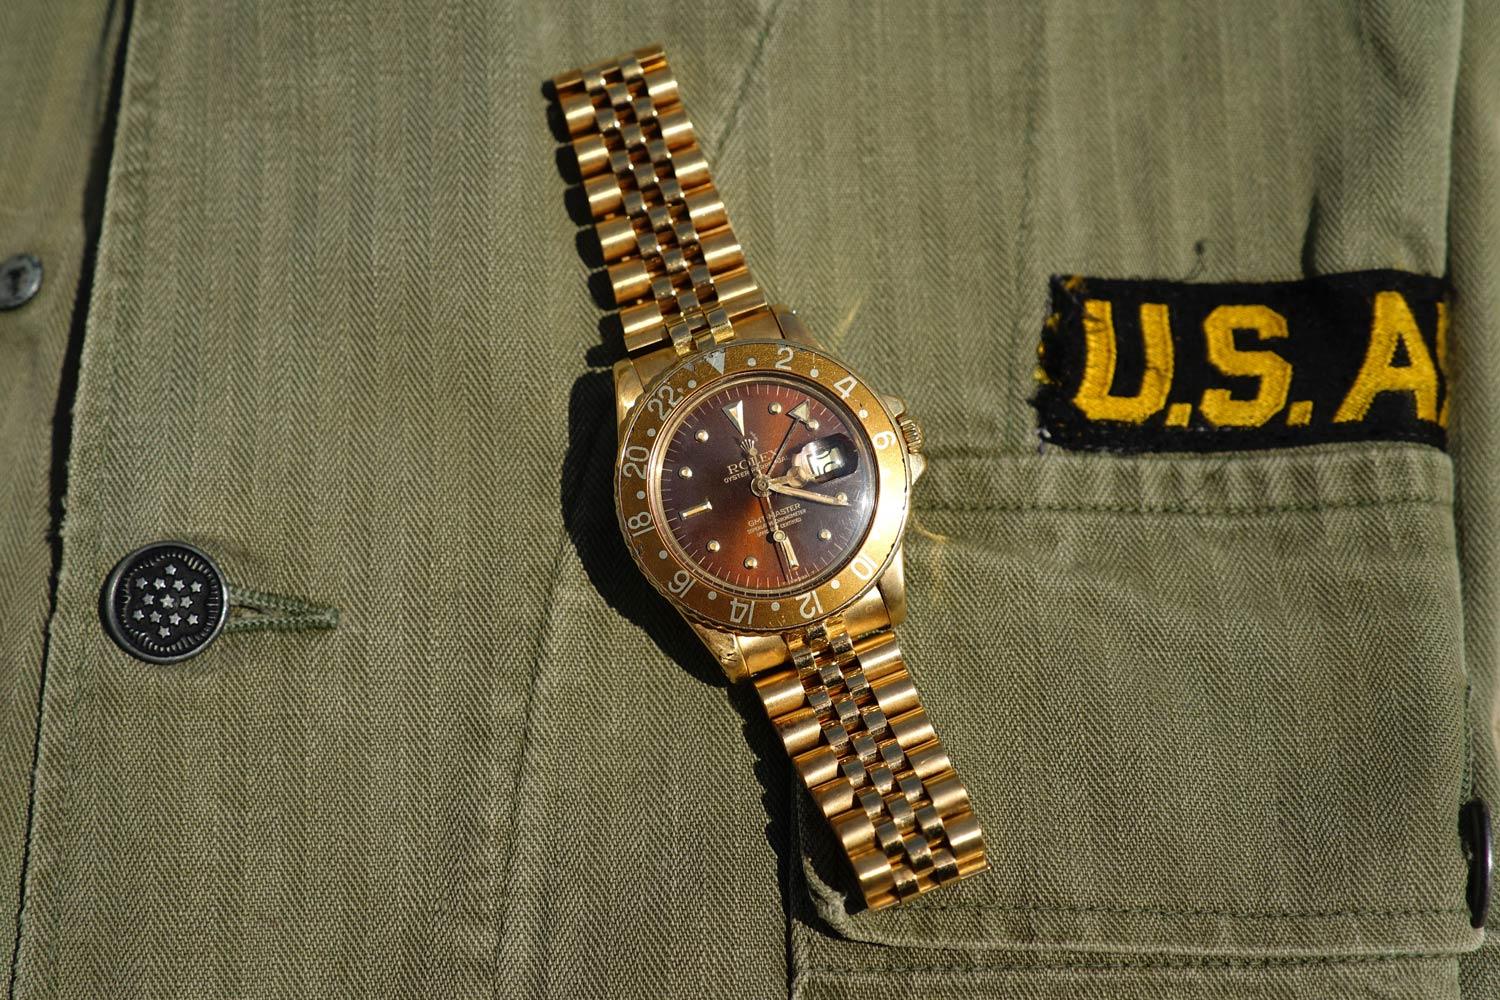 Gold GMT-Master, ref. 1675 with gold Jubilee bracelet, 1985. Vintage U.S. military shirt